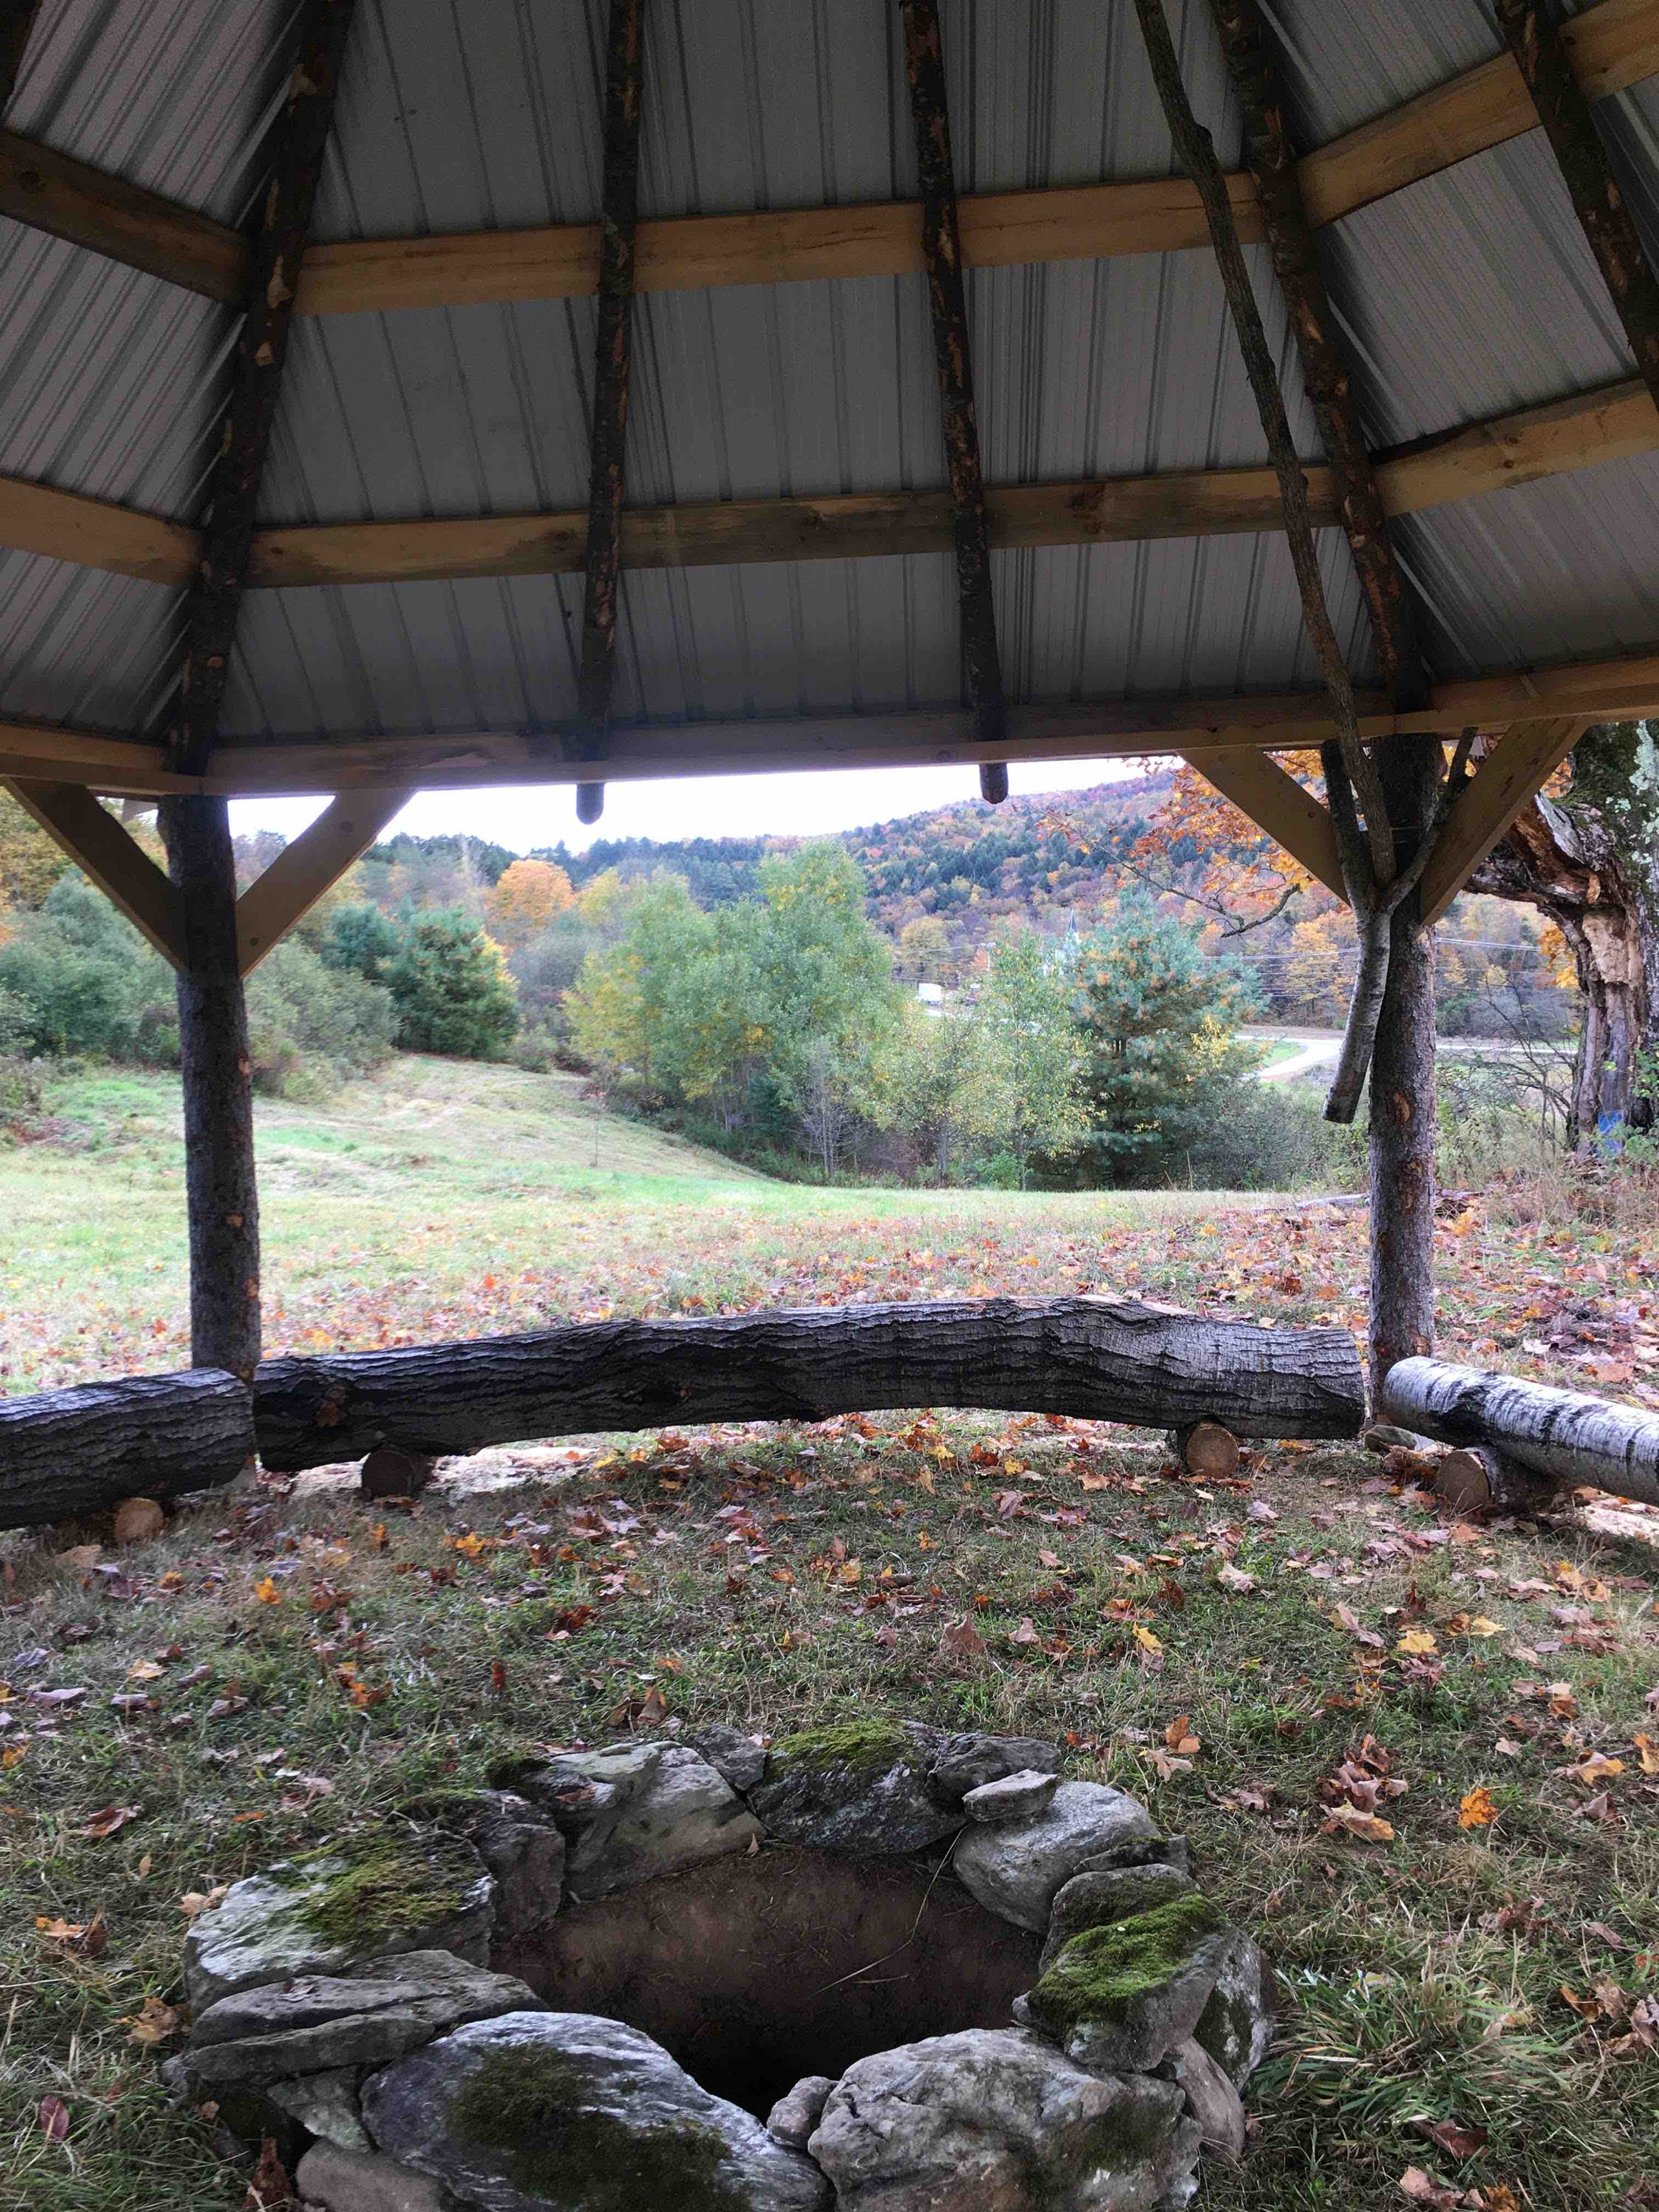 picture of an outdoor shelter